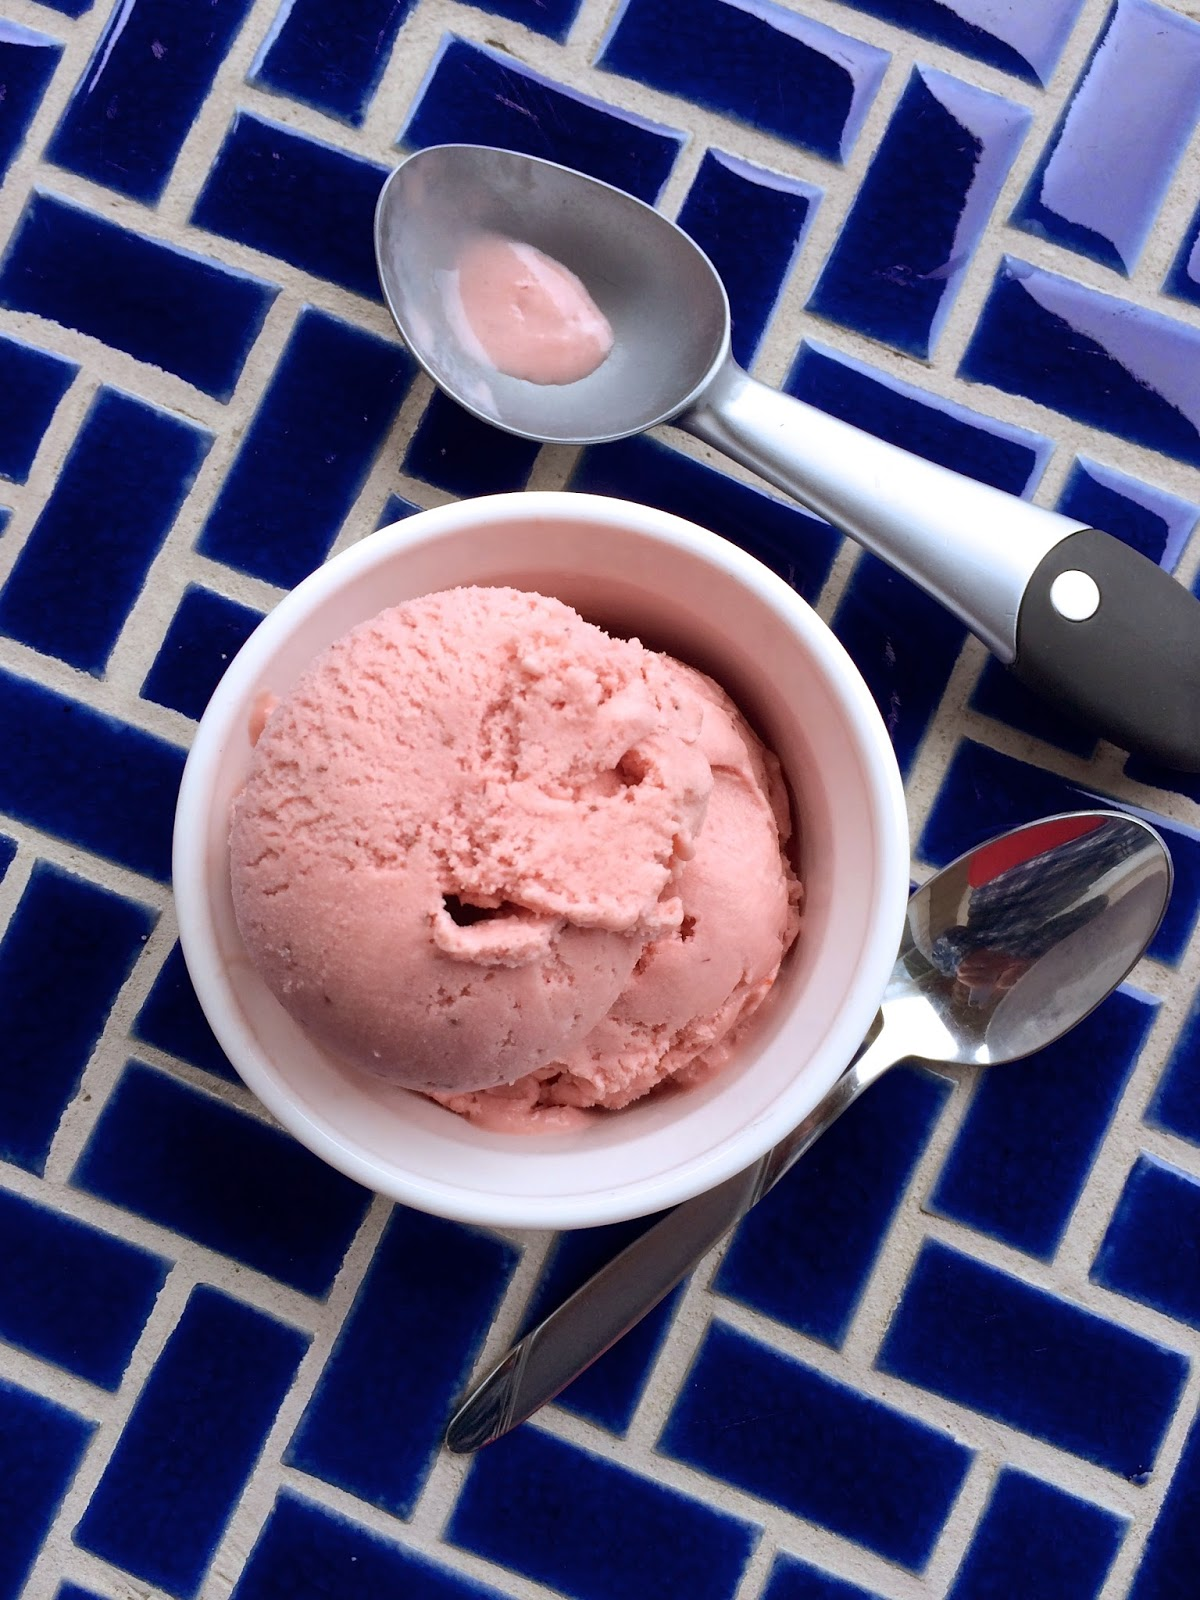 Fresh Strawberry Ice Cream by @javelinwarrior